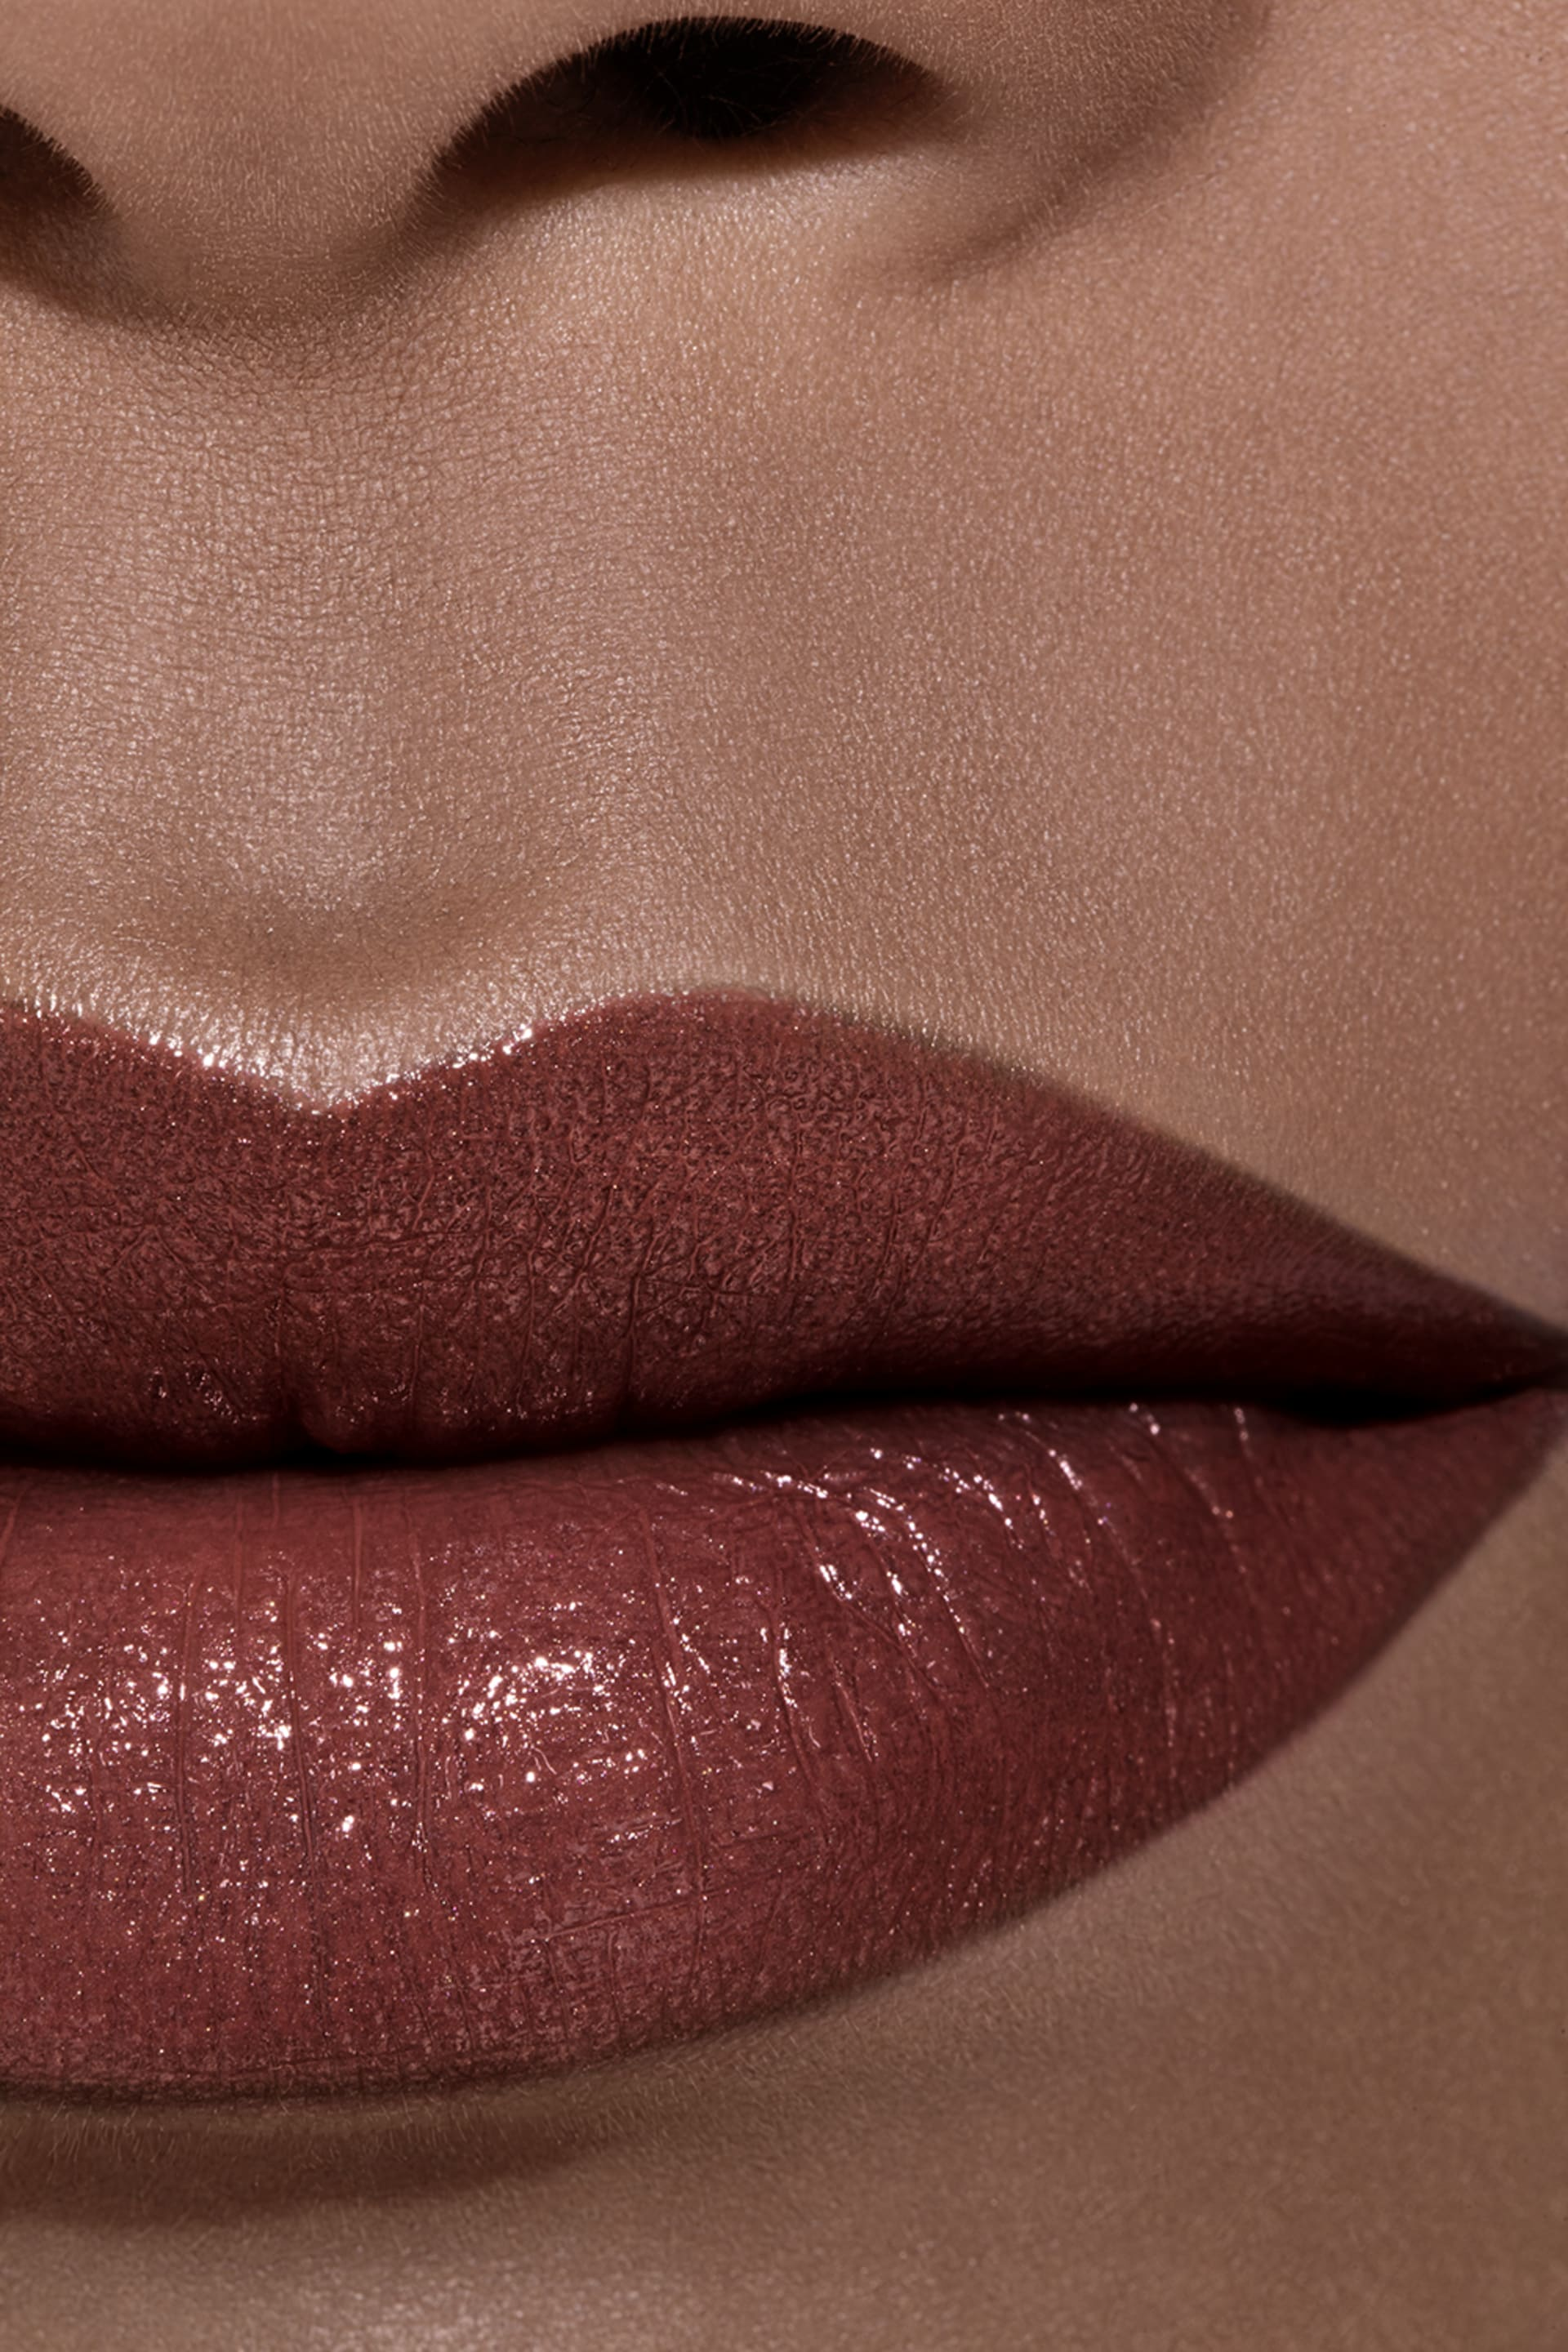 Application makeup visual 2 - ROUGE COCO 406 - ANTOINETTE